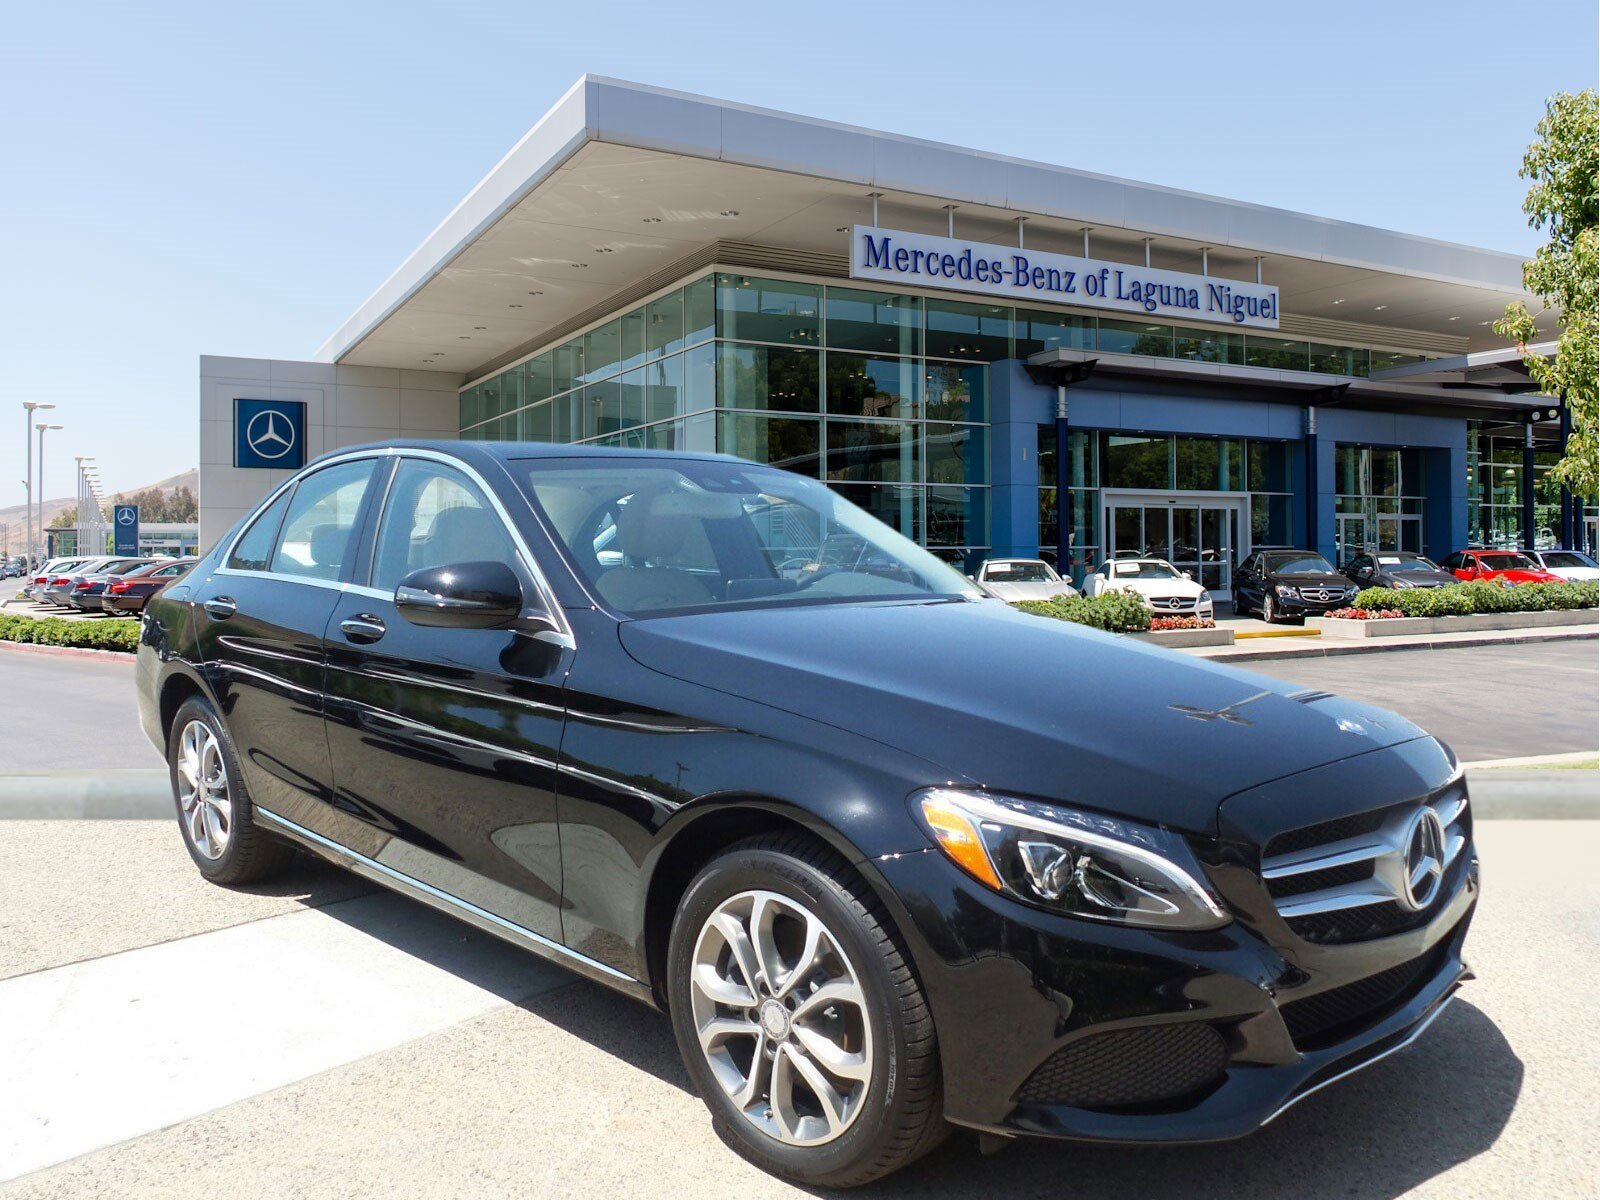 new 2016 mercedes benz c class c300 sedan in laguna niguel